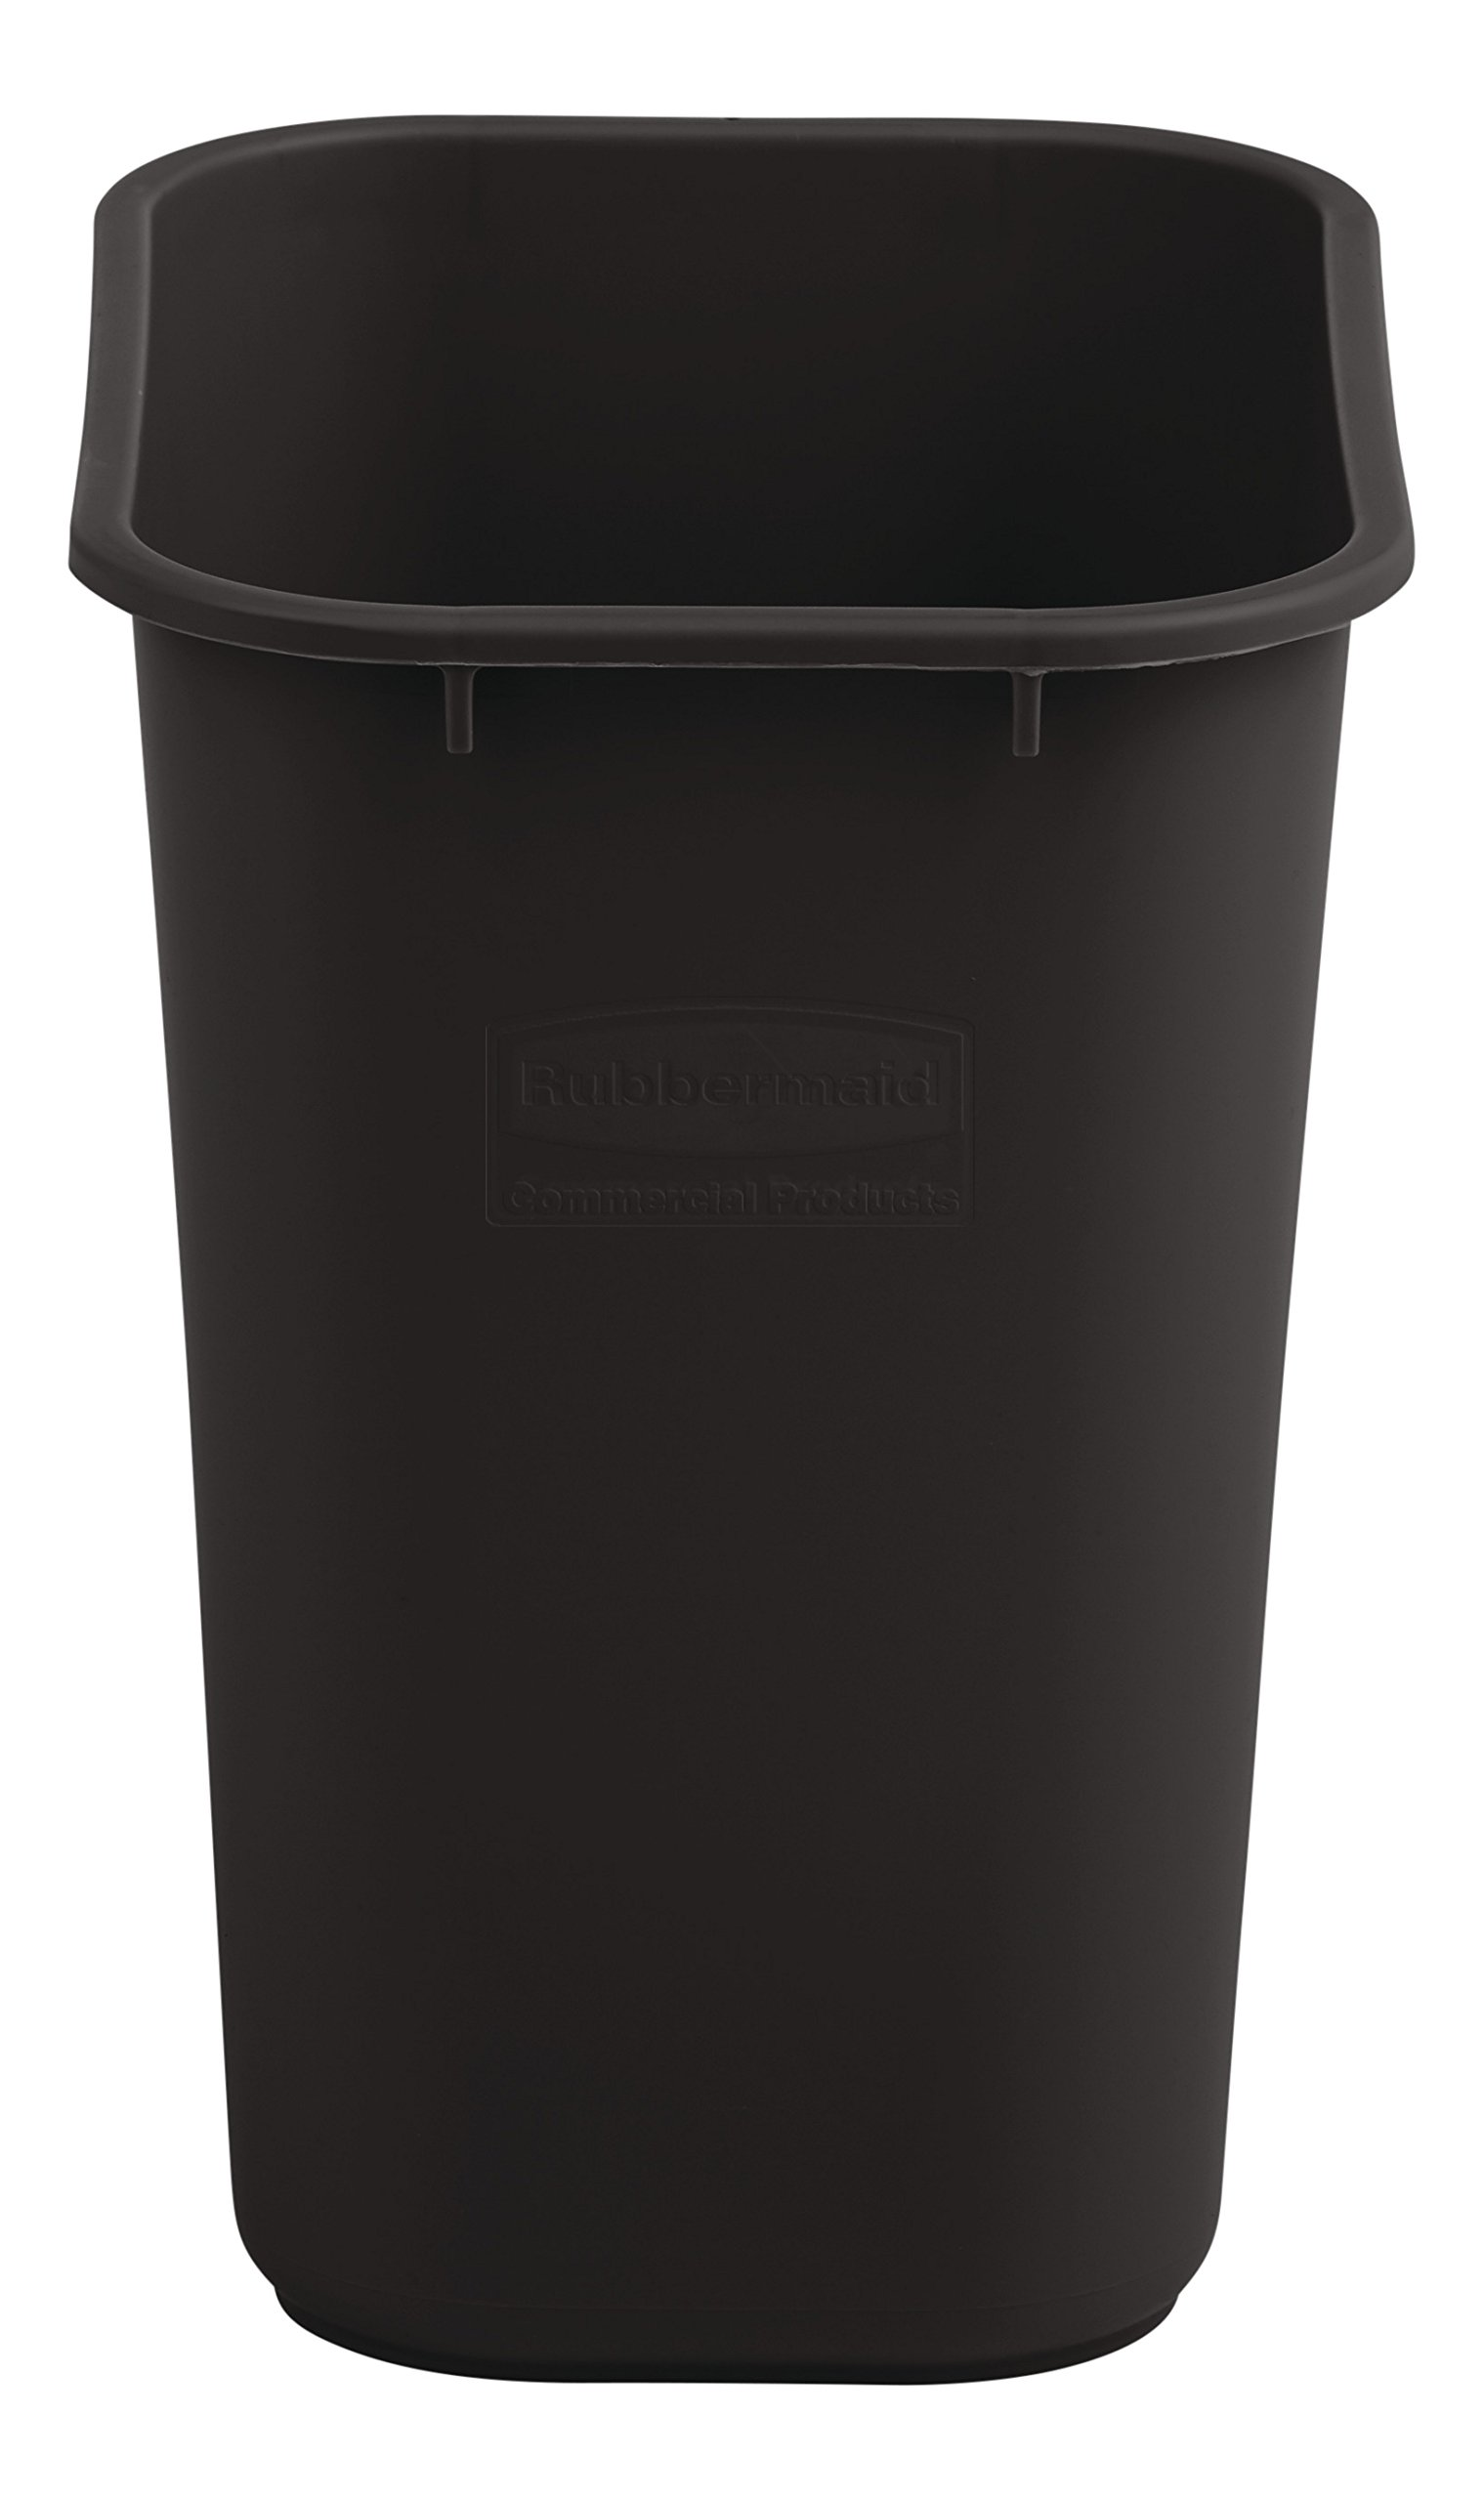 Rubbermaid Commercial Medium Wastebasket, 28 Quart - Brown, 2018376